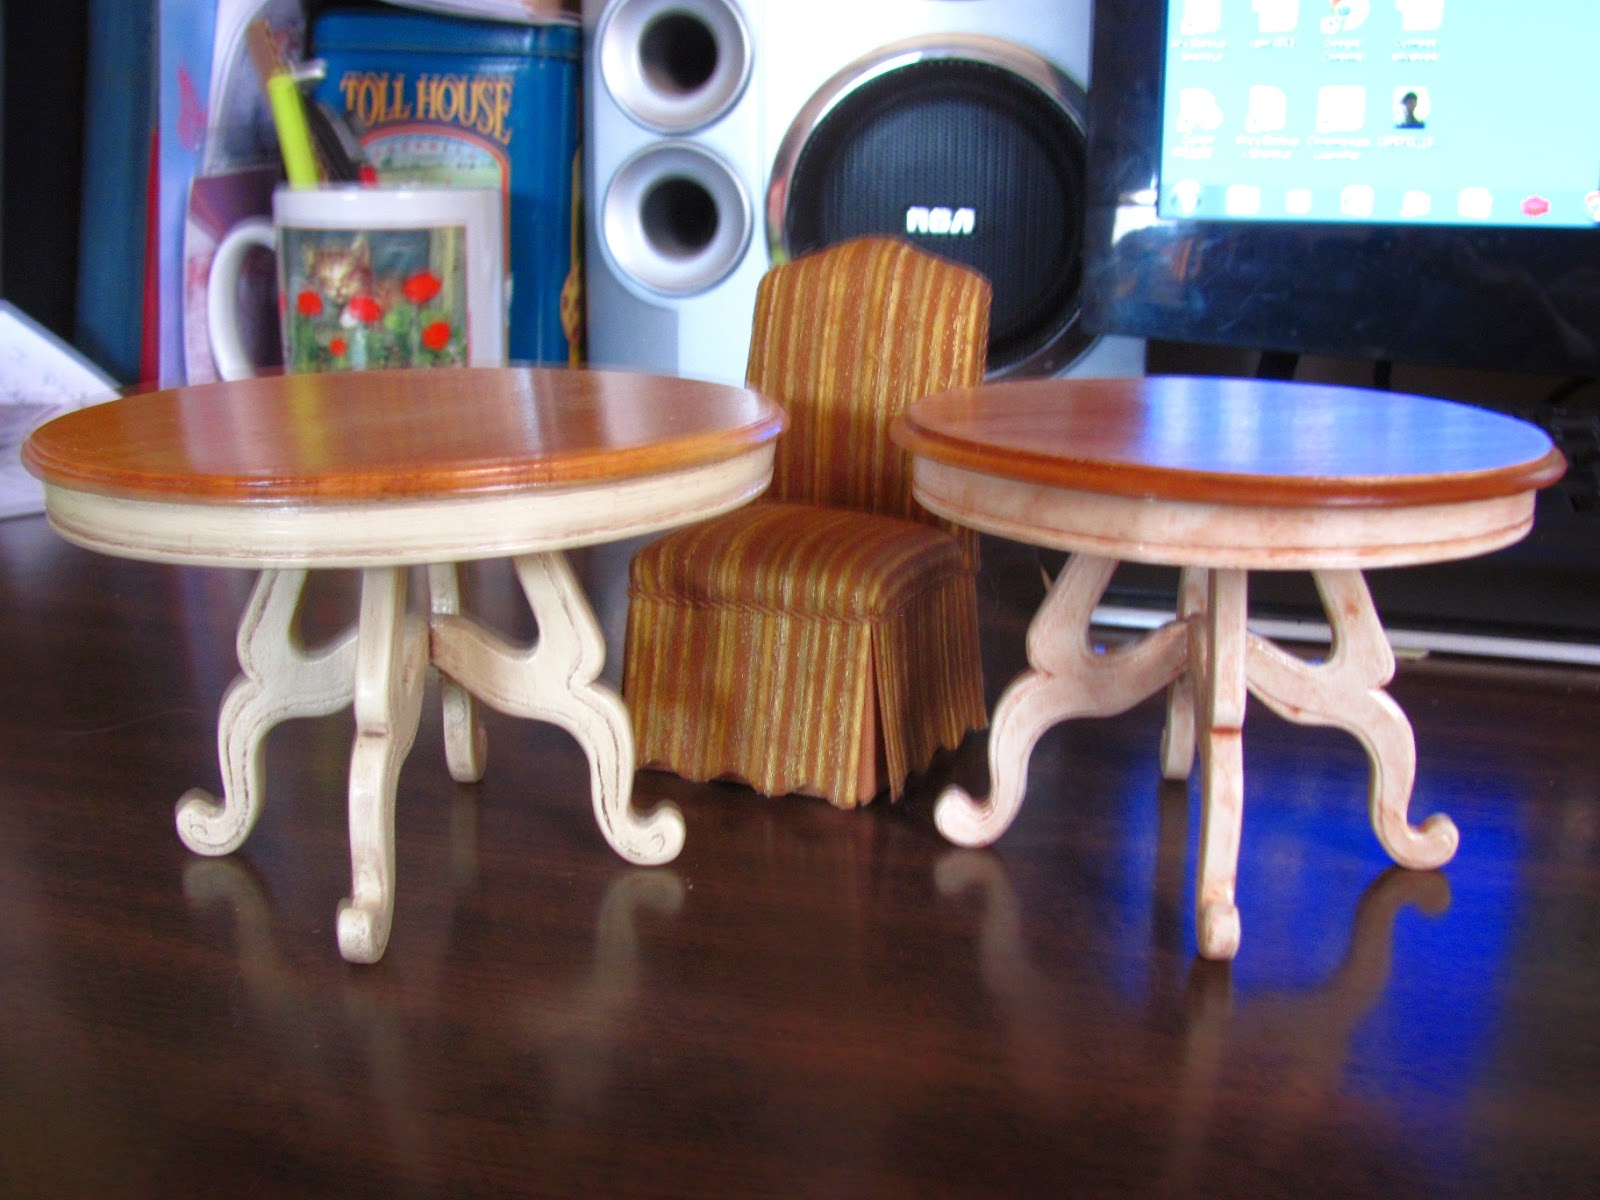 miniature dollhouse furniture woodworking. This Miniature Dollhouse Furniture Woodworking